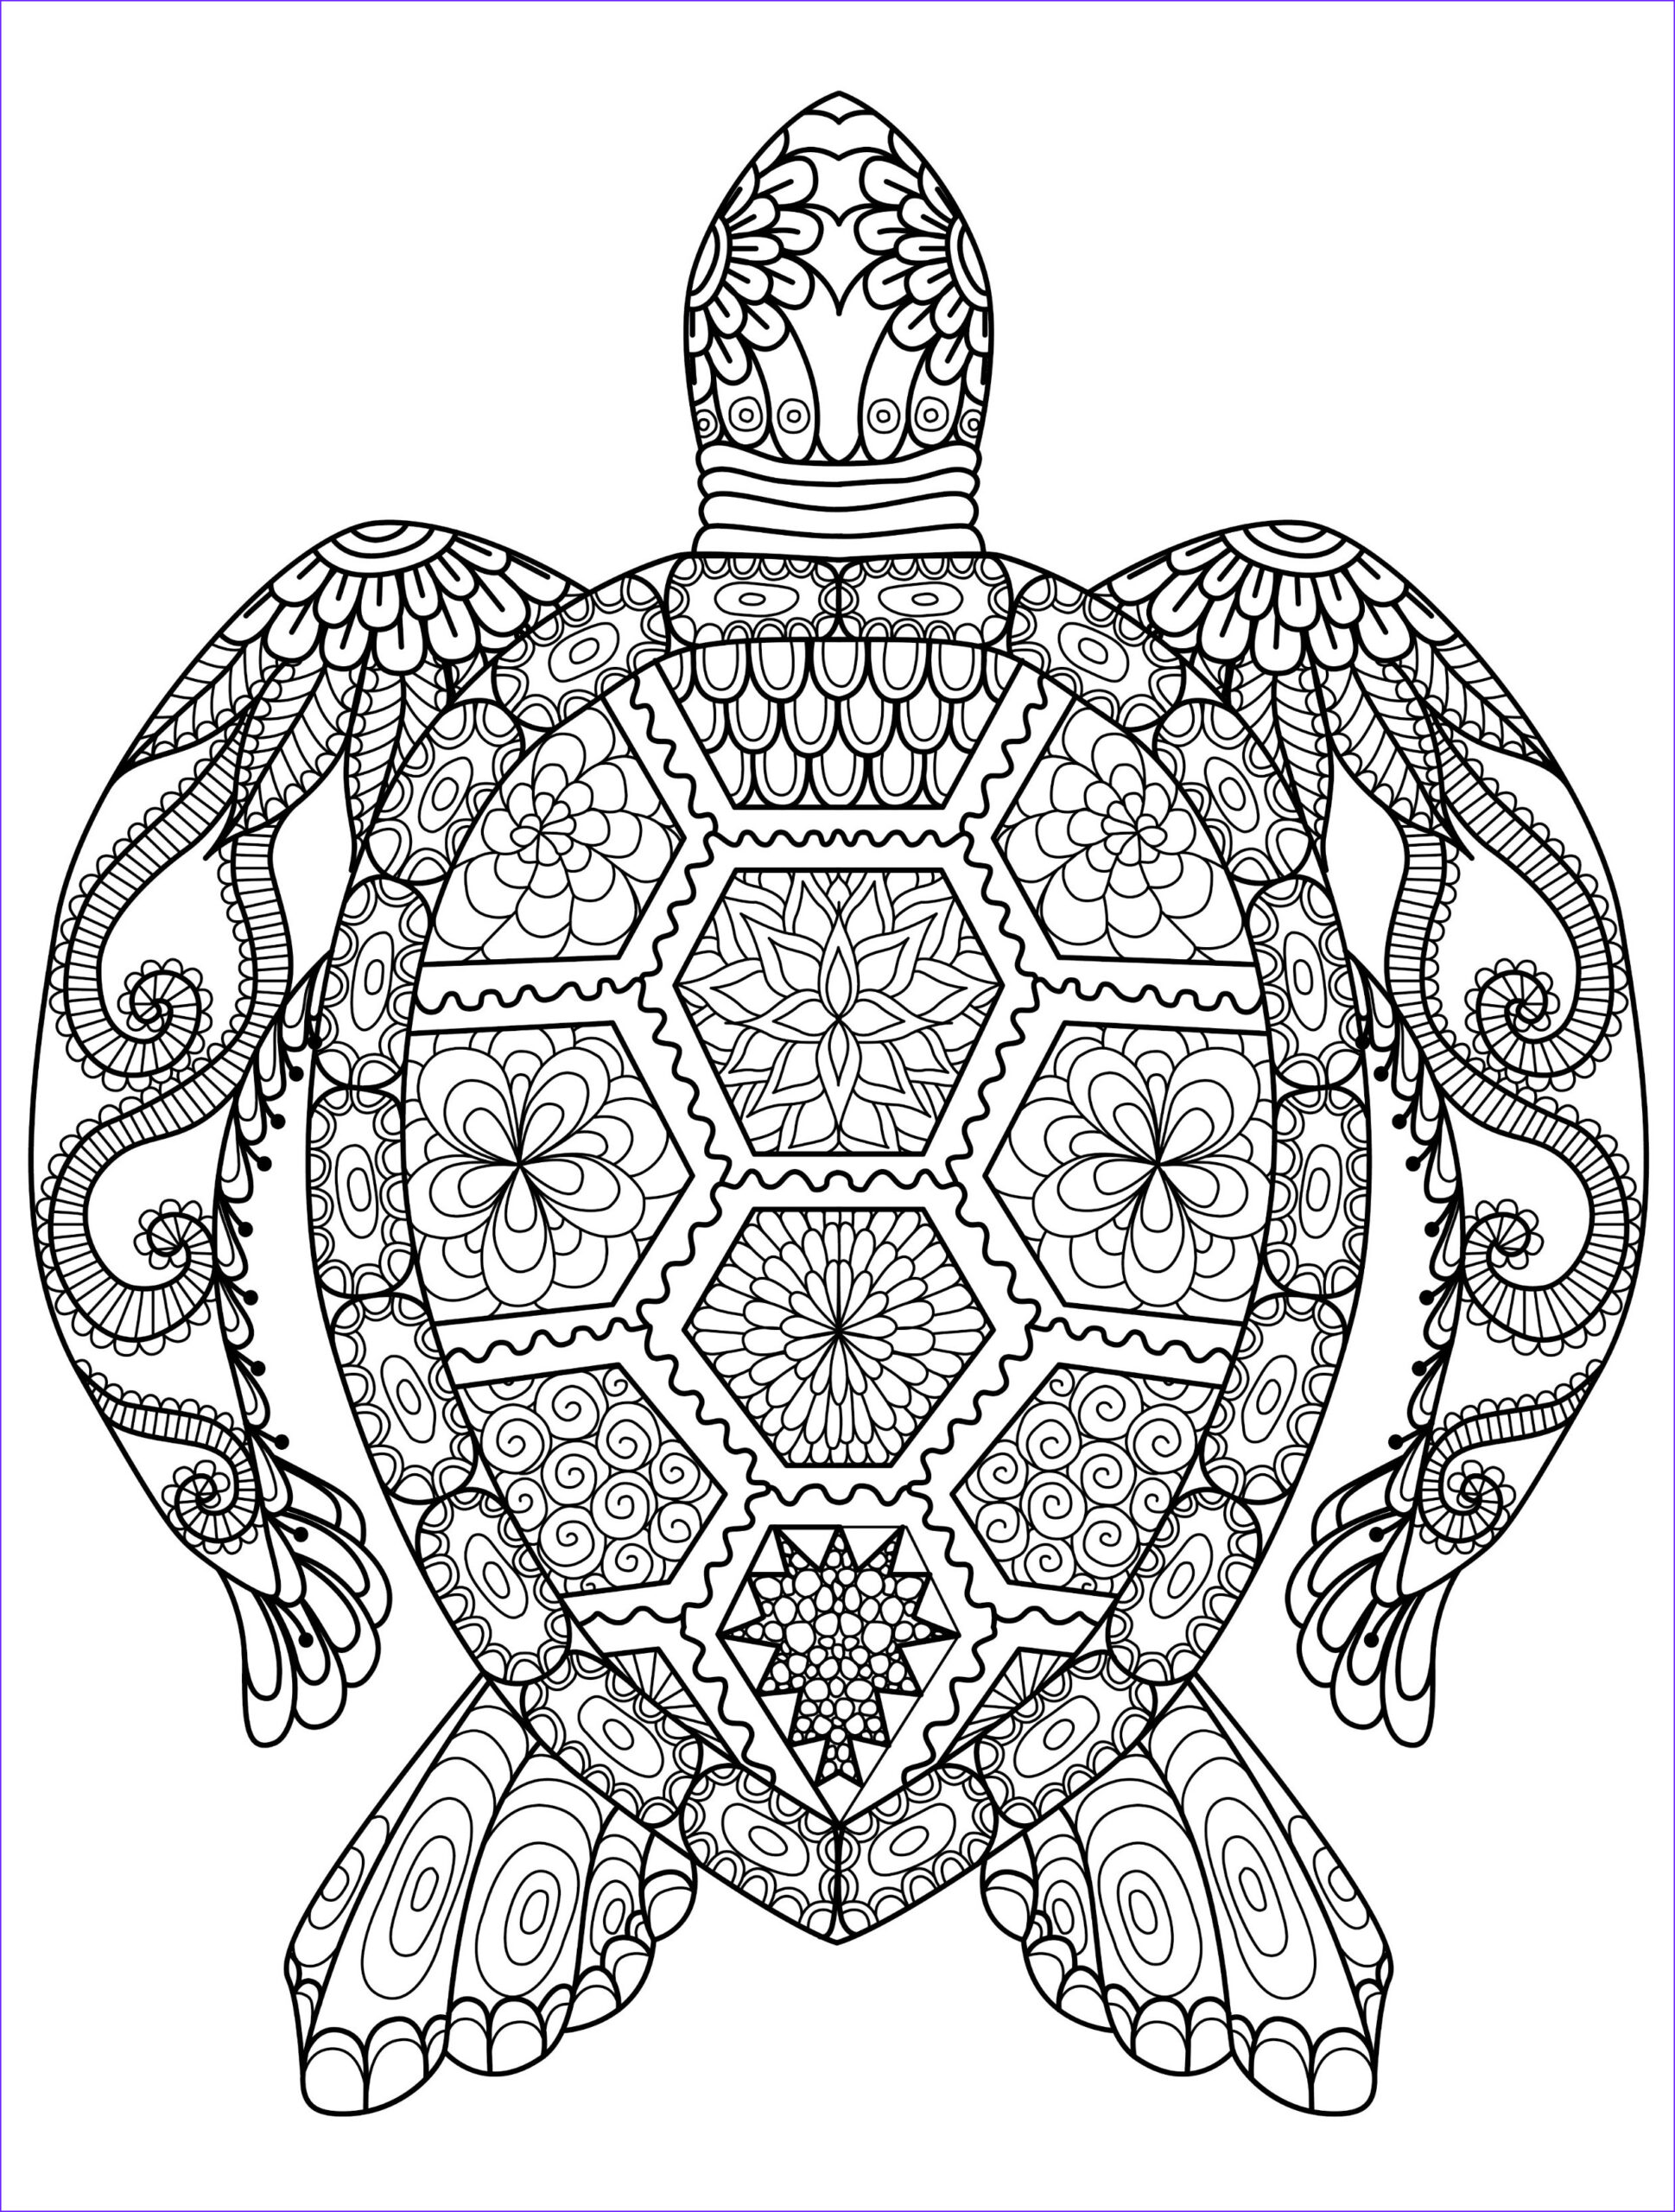 Coloring Pages Of Animals for Adults Awesome Images Animal Coloring Pages for Adults Best Coloring Pages for